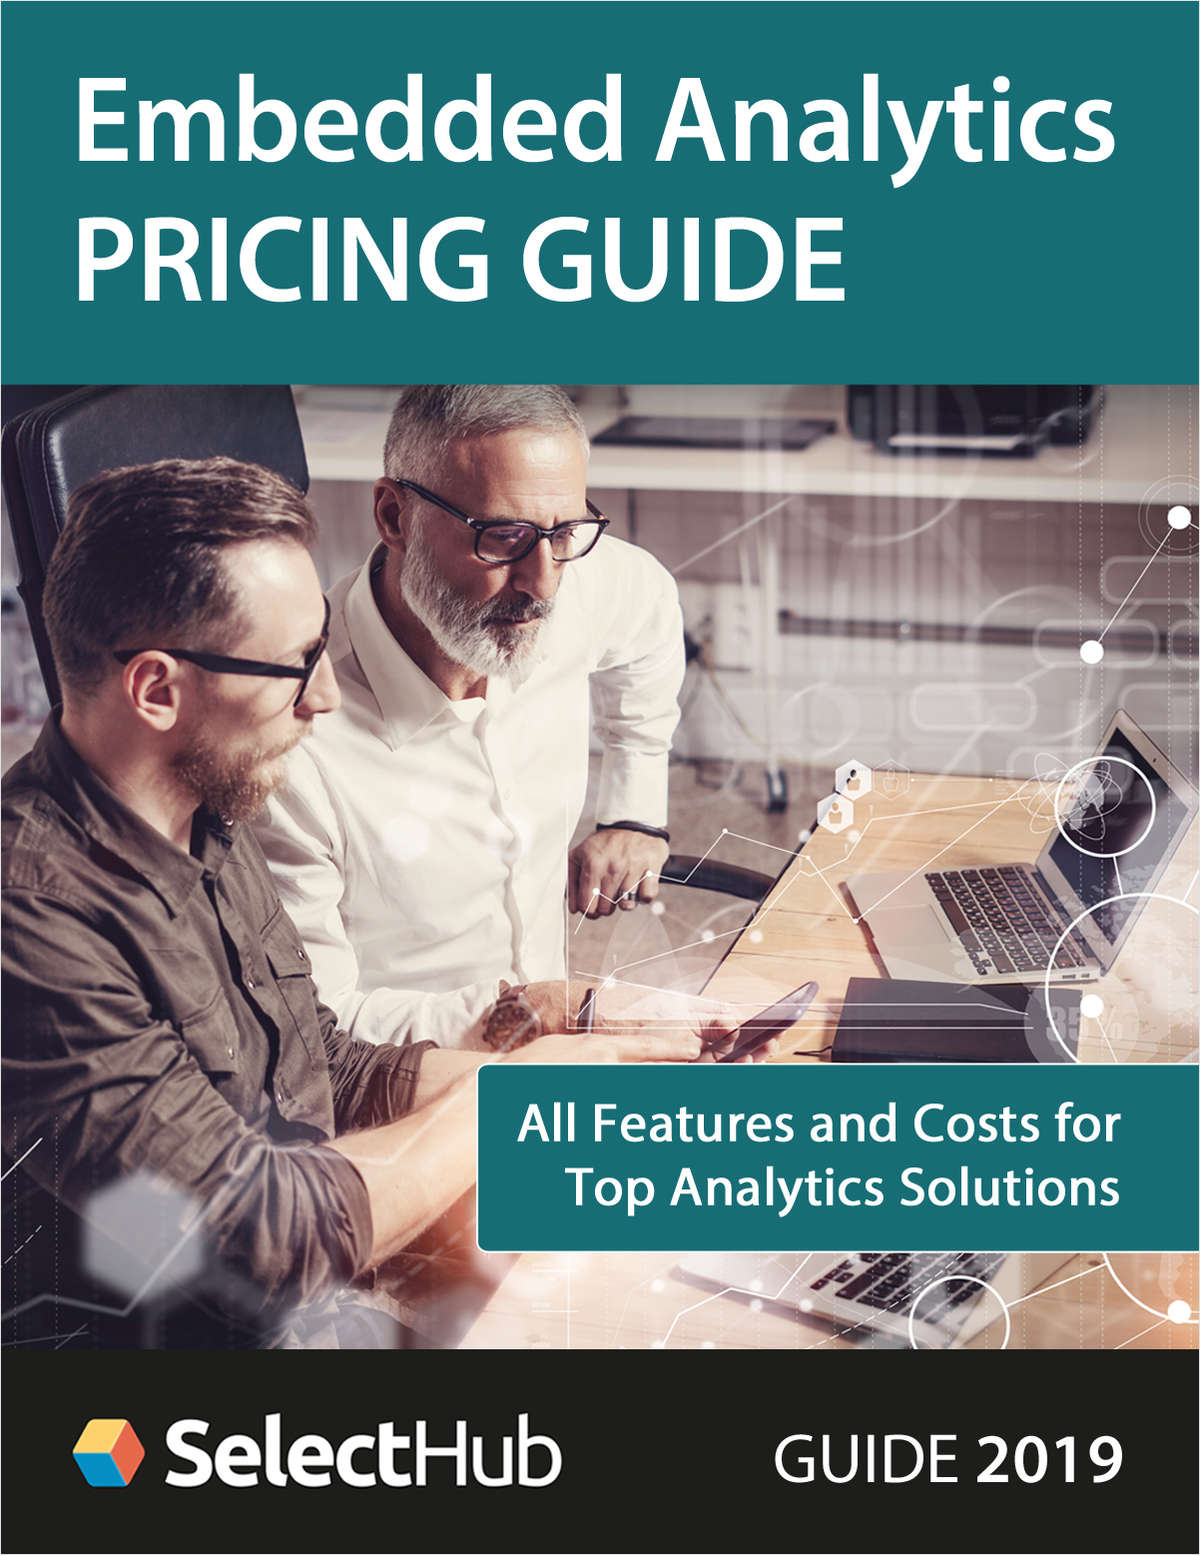 Top Embedded Analytics Pricing Guide 2019